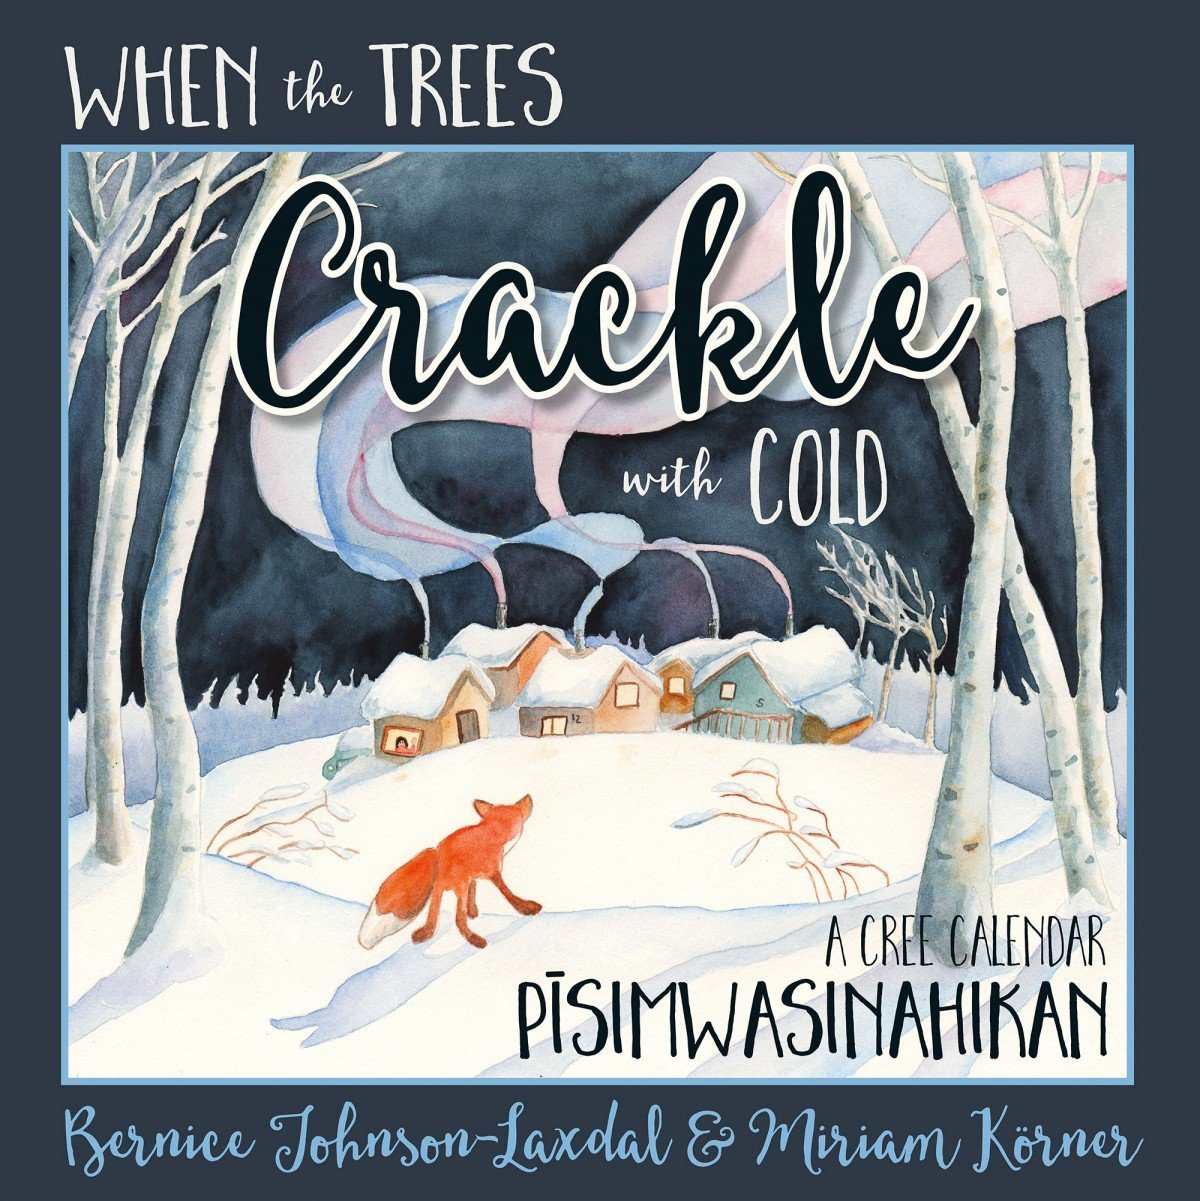 When The Trees Crackle with Cold Activity Book